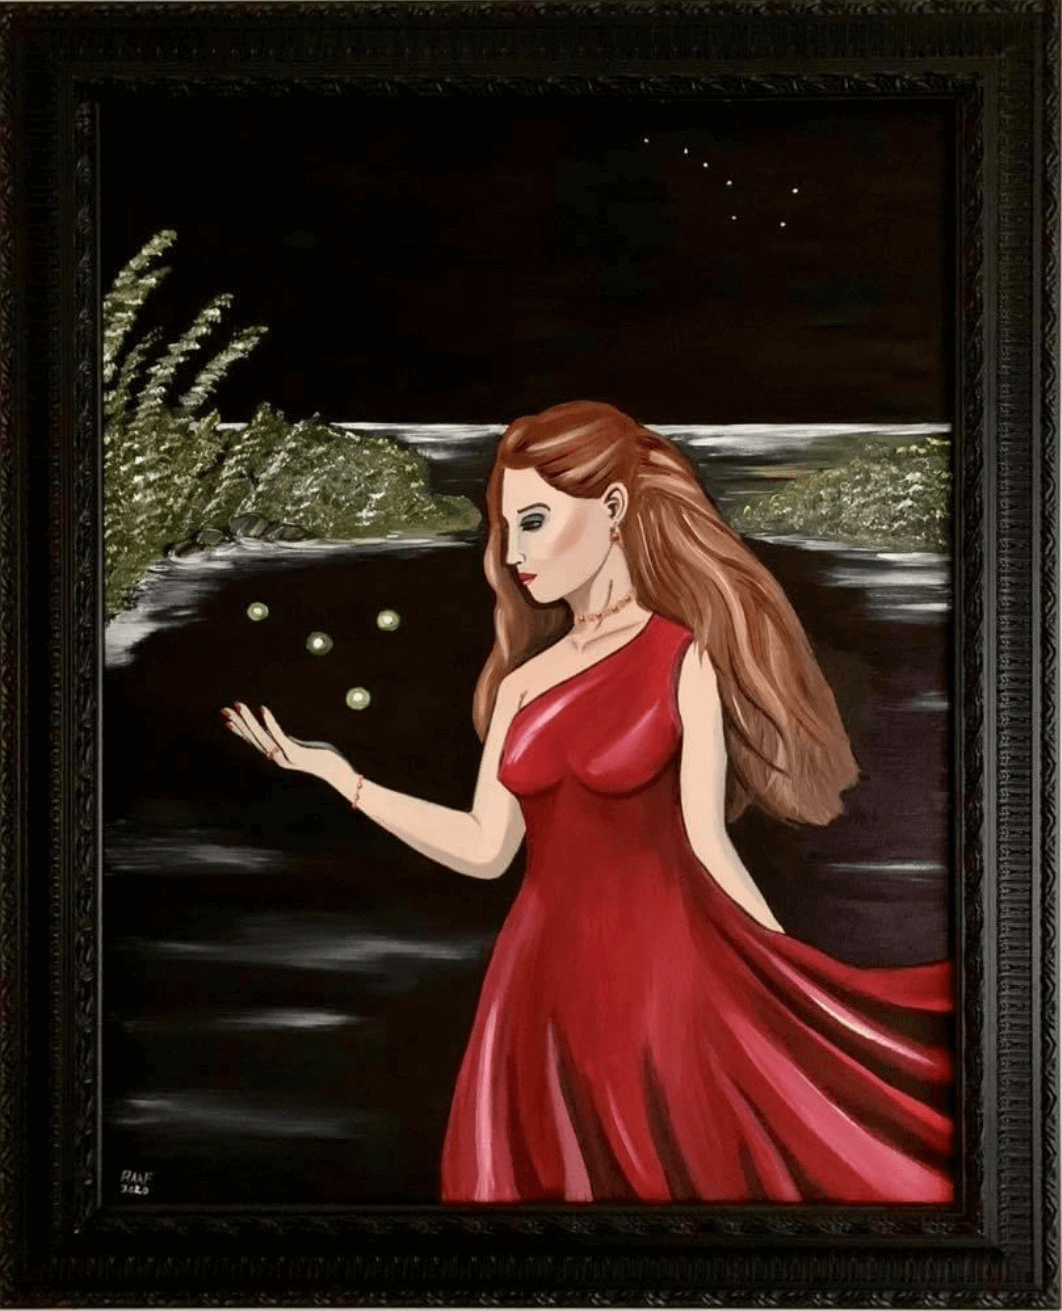 Woman-in-red-dress-by-raafpaintings